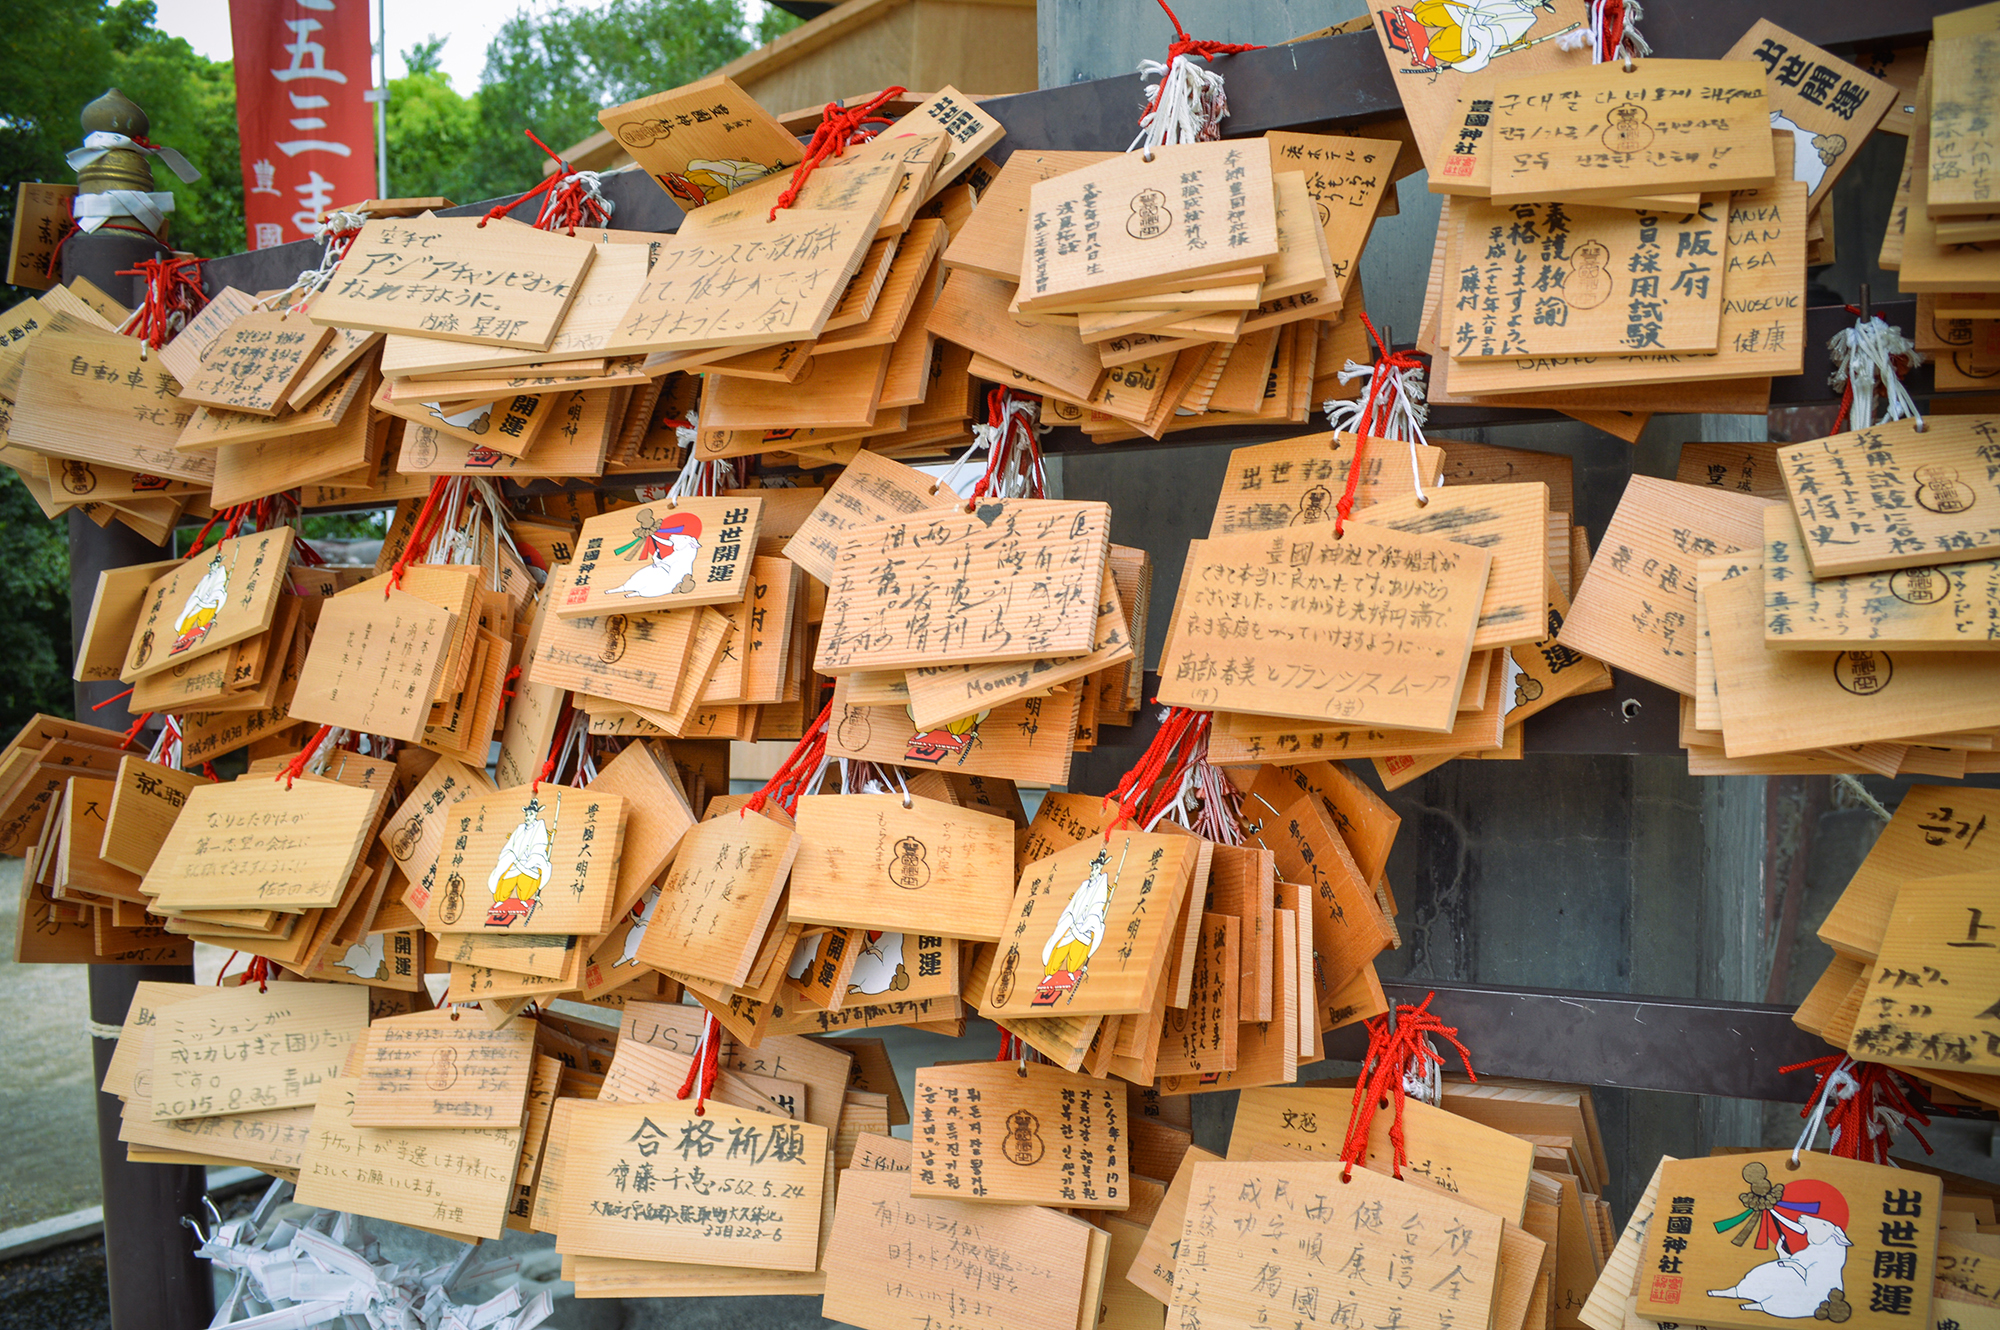 These wooden wish boards are called ema in Japanese.